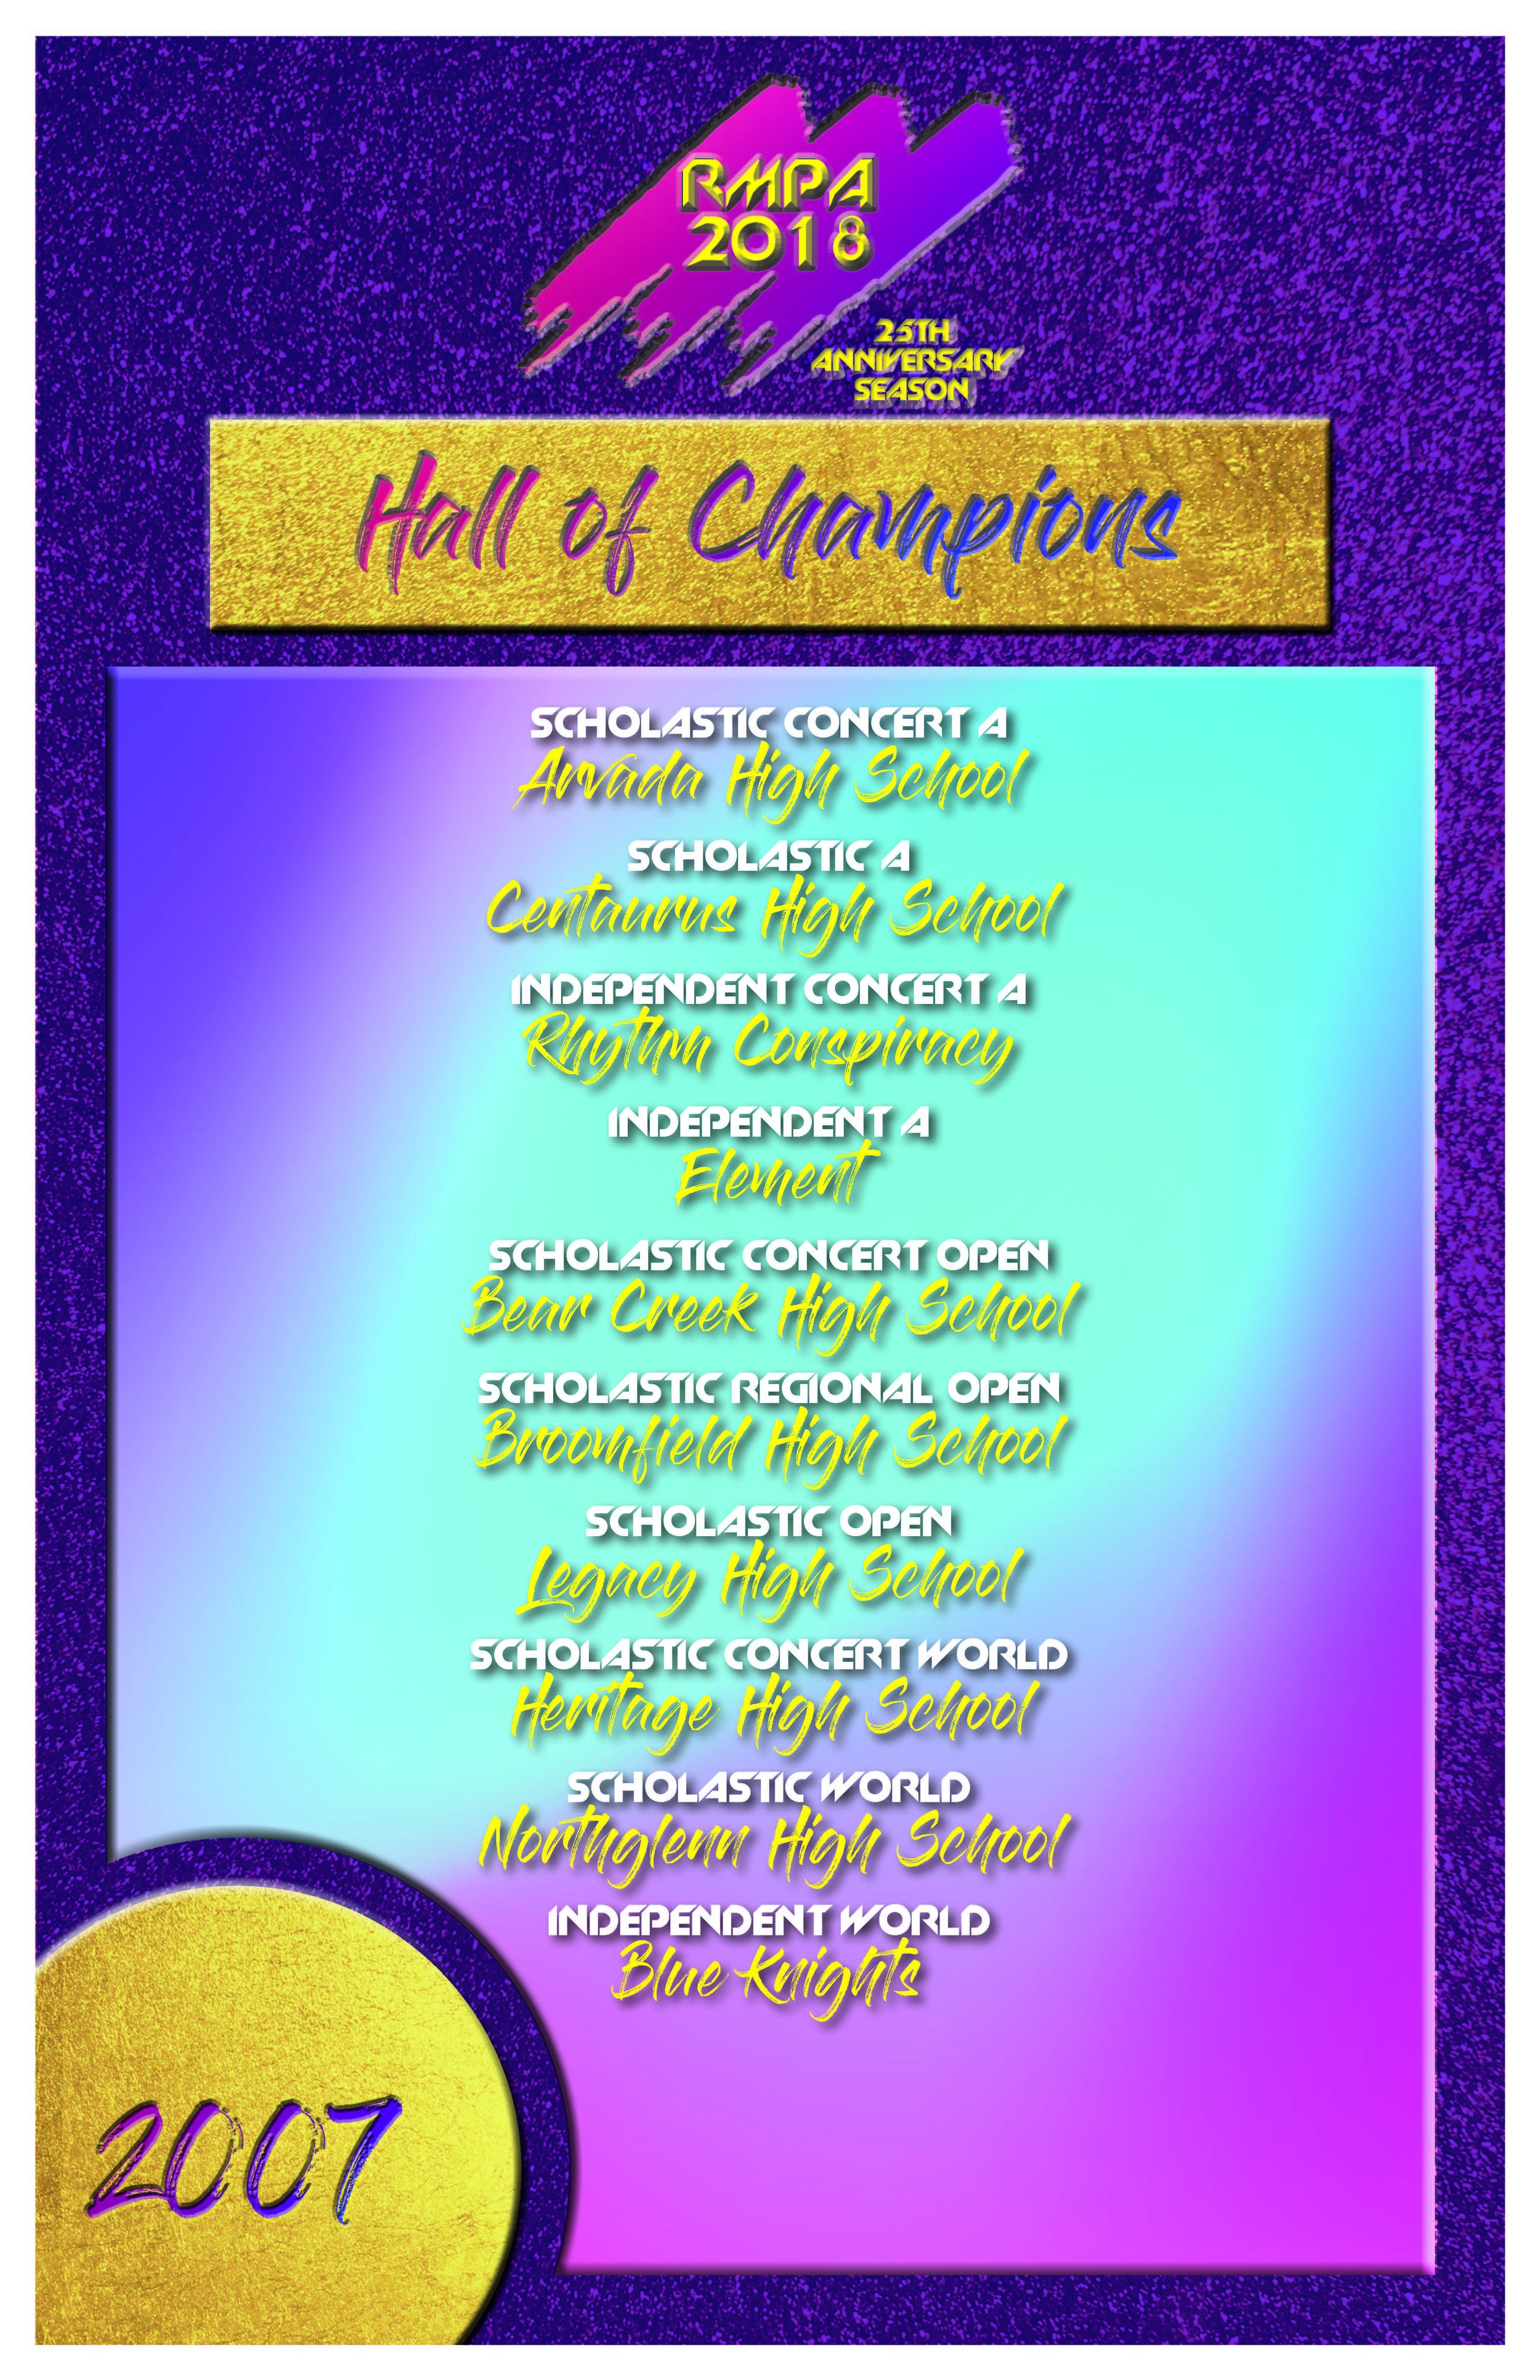 Hall of Champions Posters_Page_15.jpg